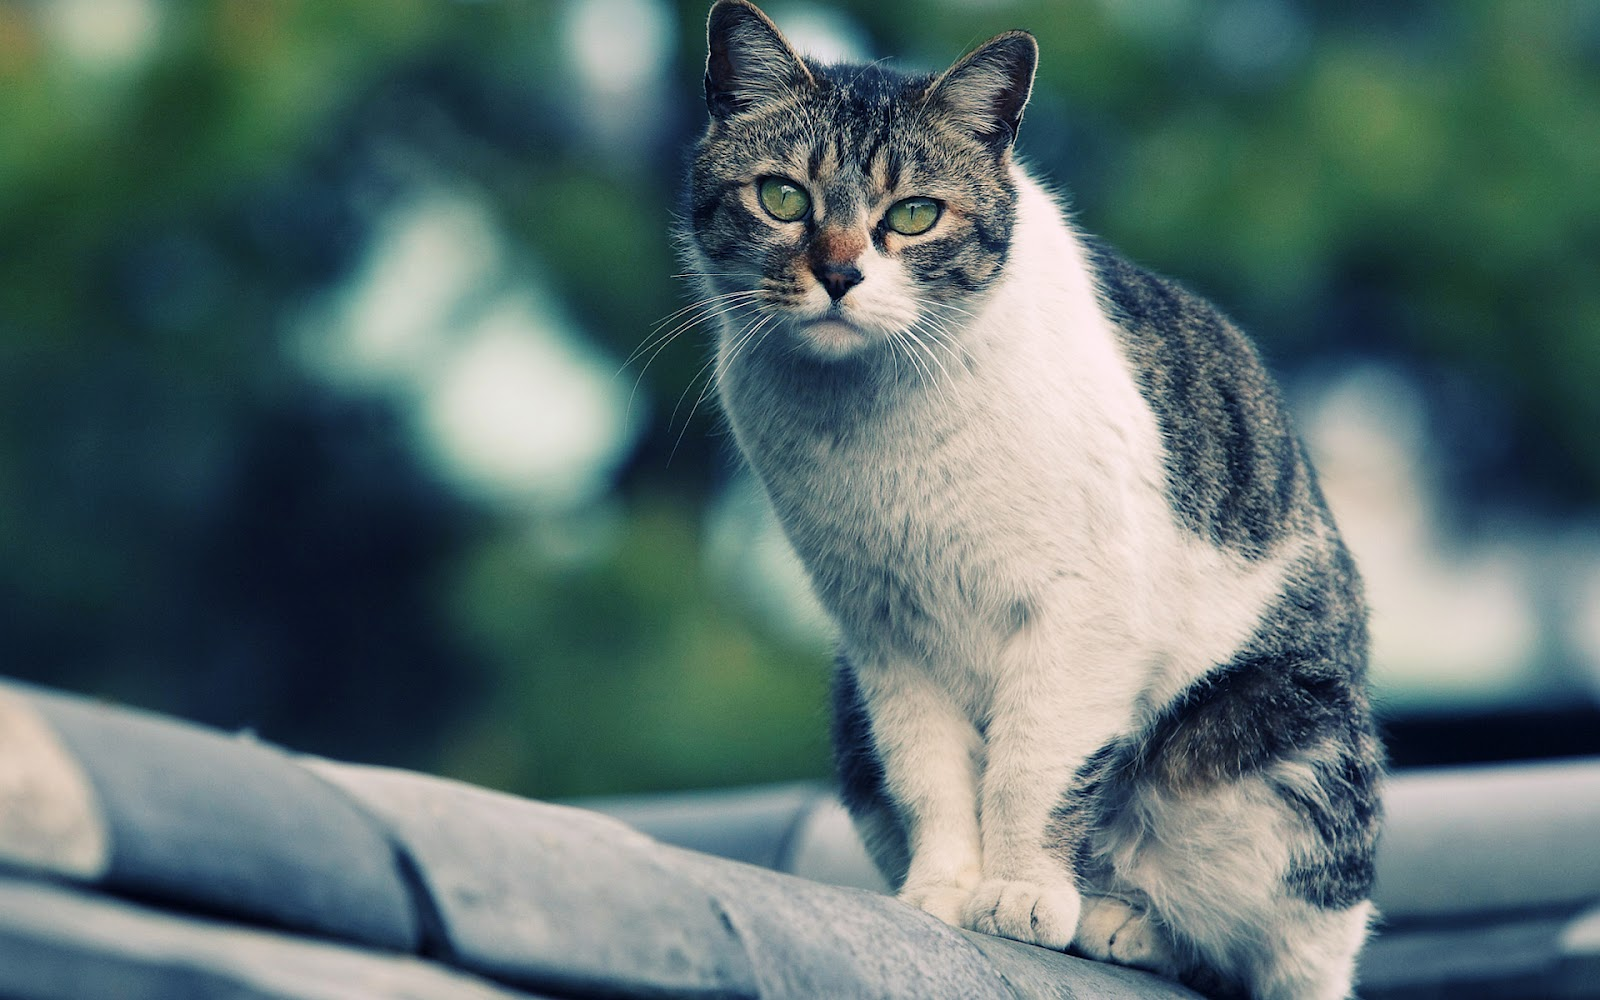 Proxecto gato cats wallpapers by bighdwallpapers - Kitten wallpaper ...